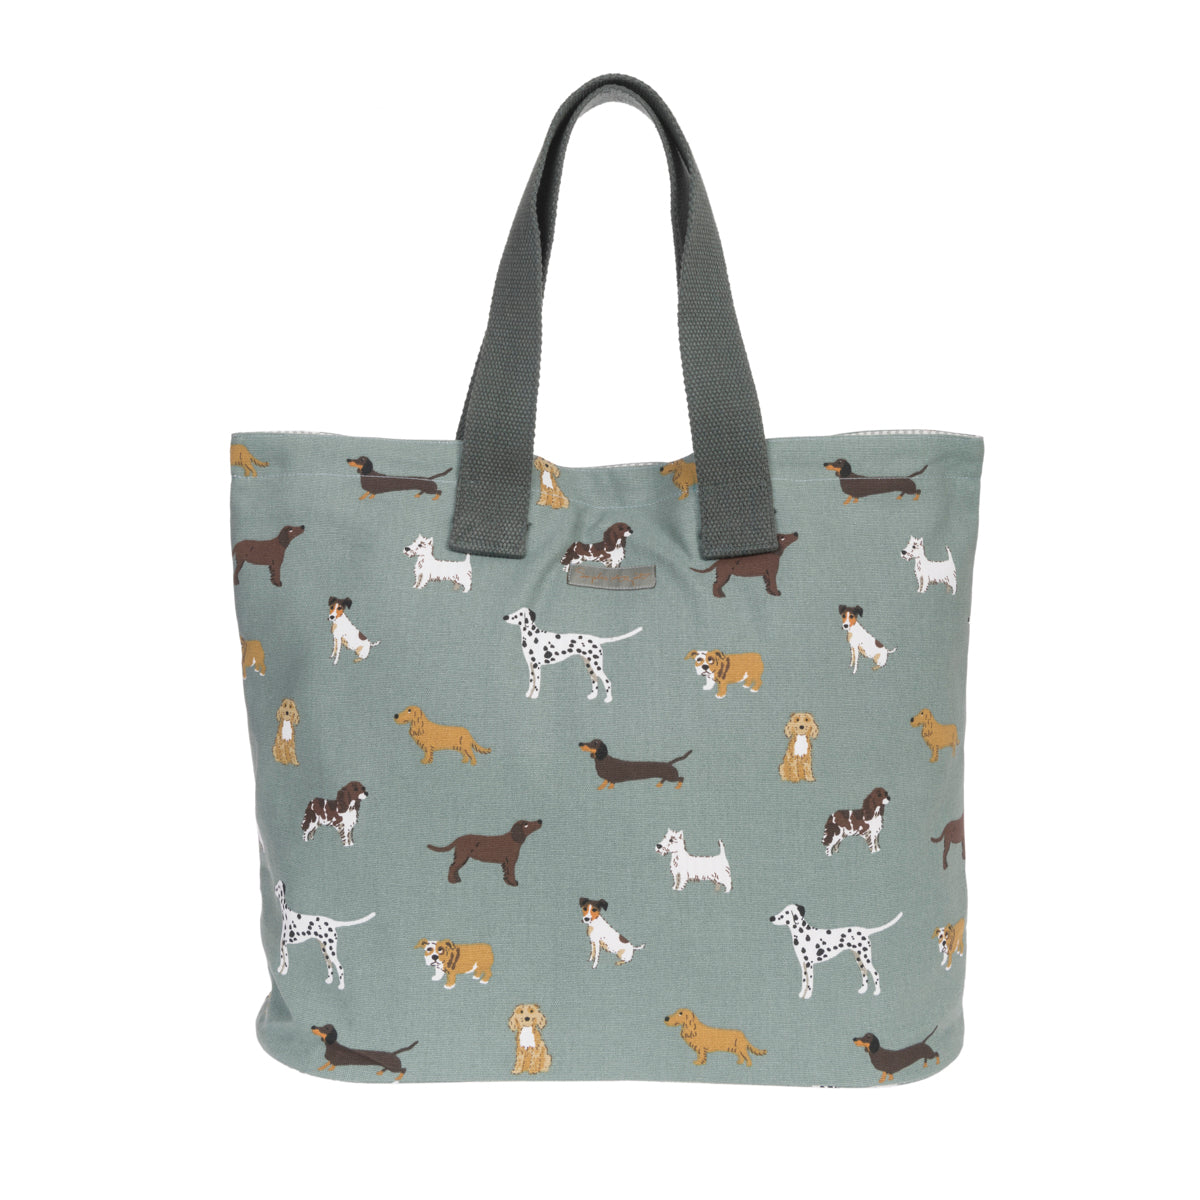 Fetch Everyday Bag by Sophie Allport